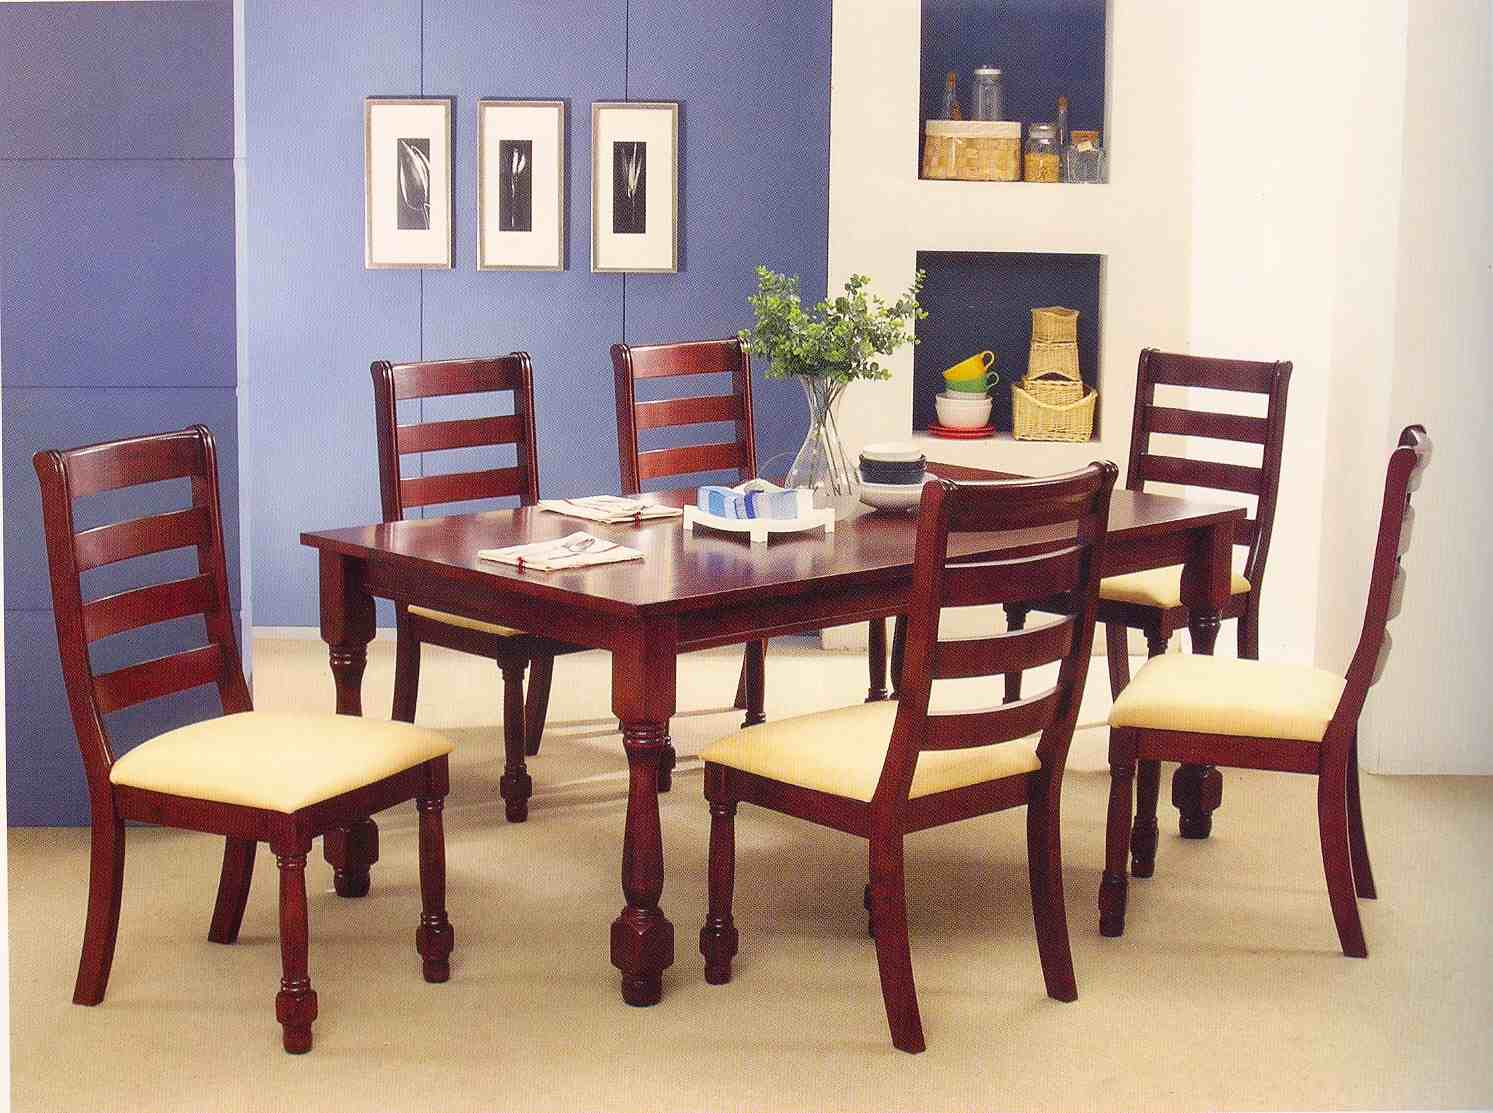 Dining room set for even more tastier meals home for Dining room furniture